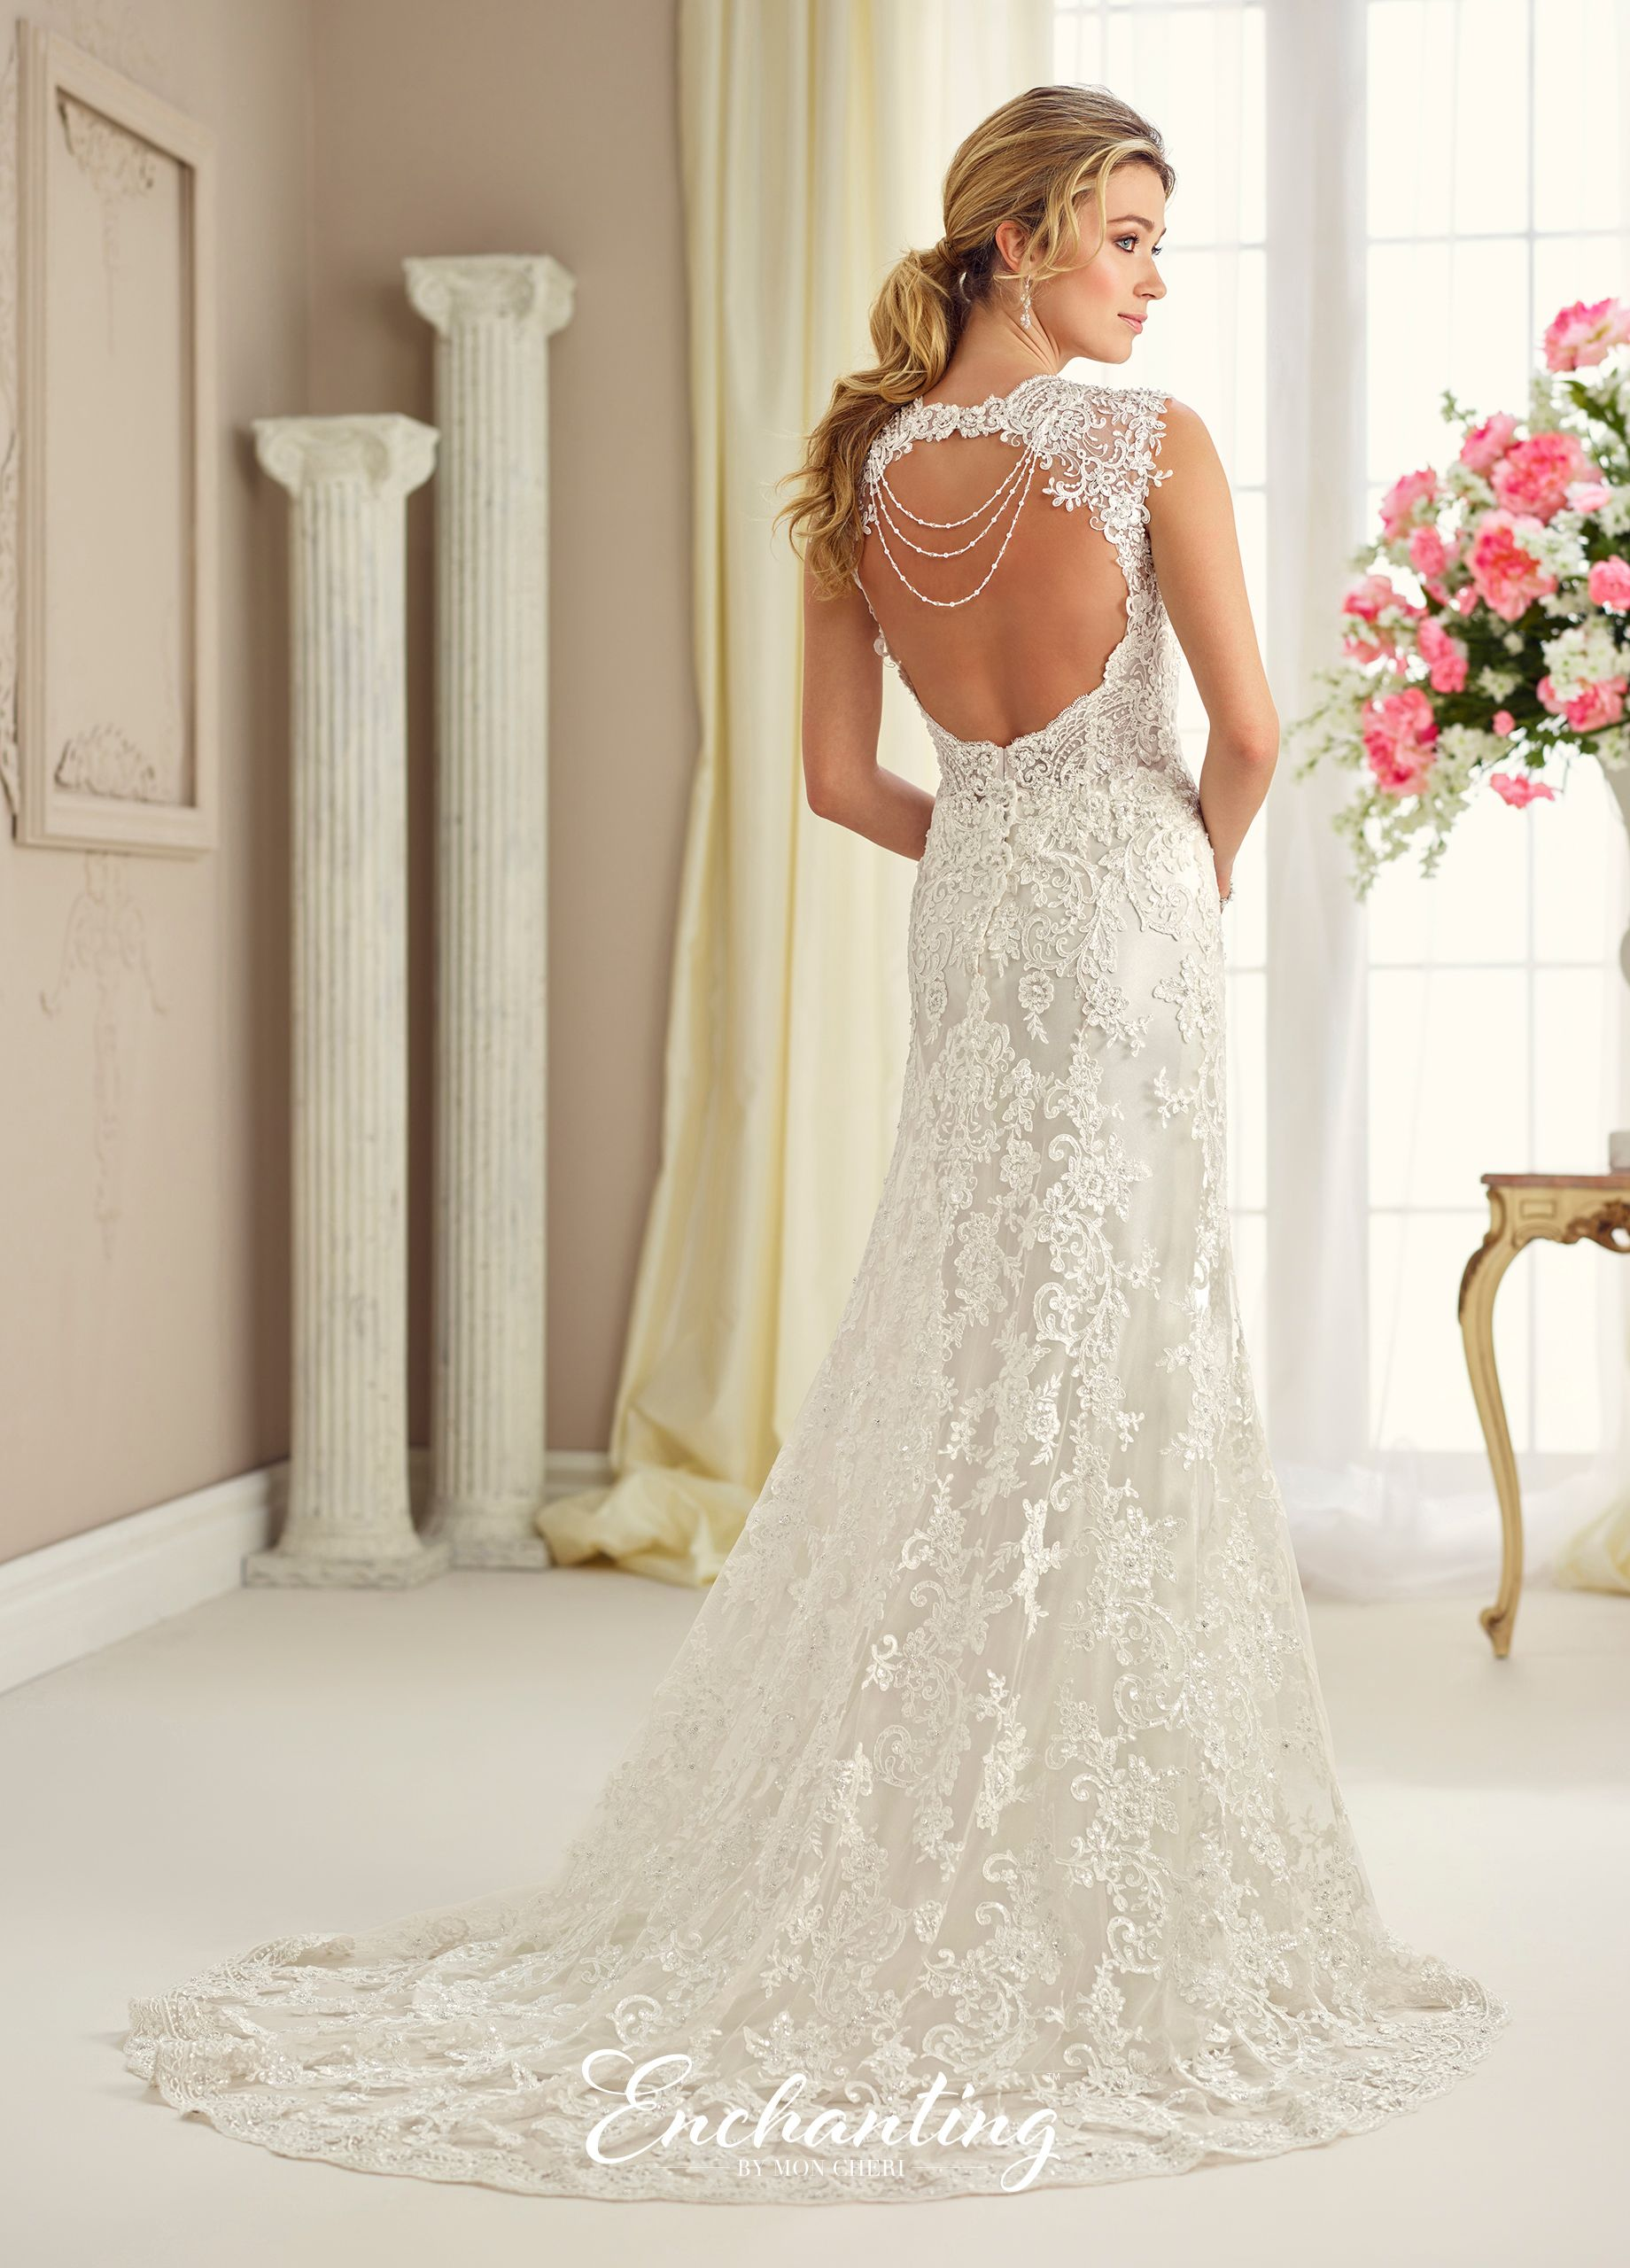 Wedding dress with bow on back  Enchanting Wedding Dresses    Gowns Wedding dress and Weddings